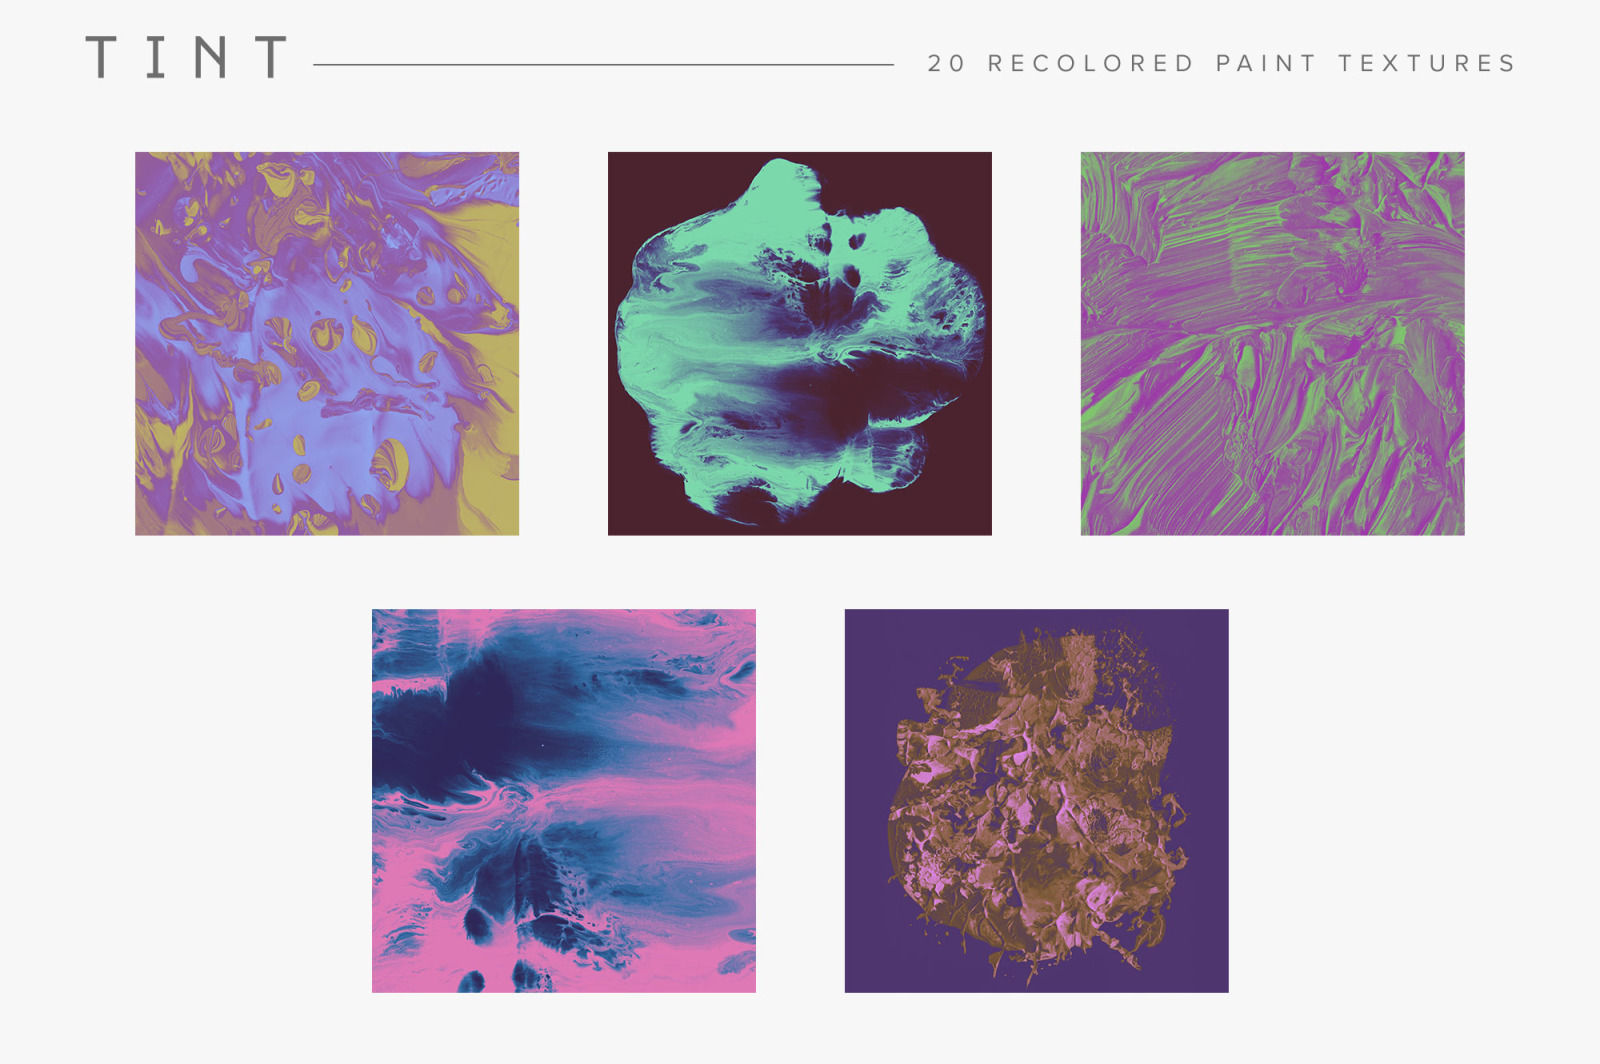 Tint: Recolored Paint Textures